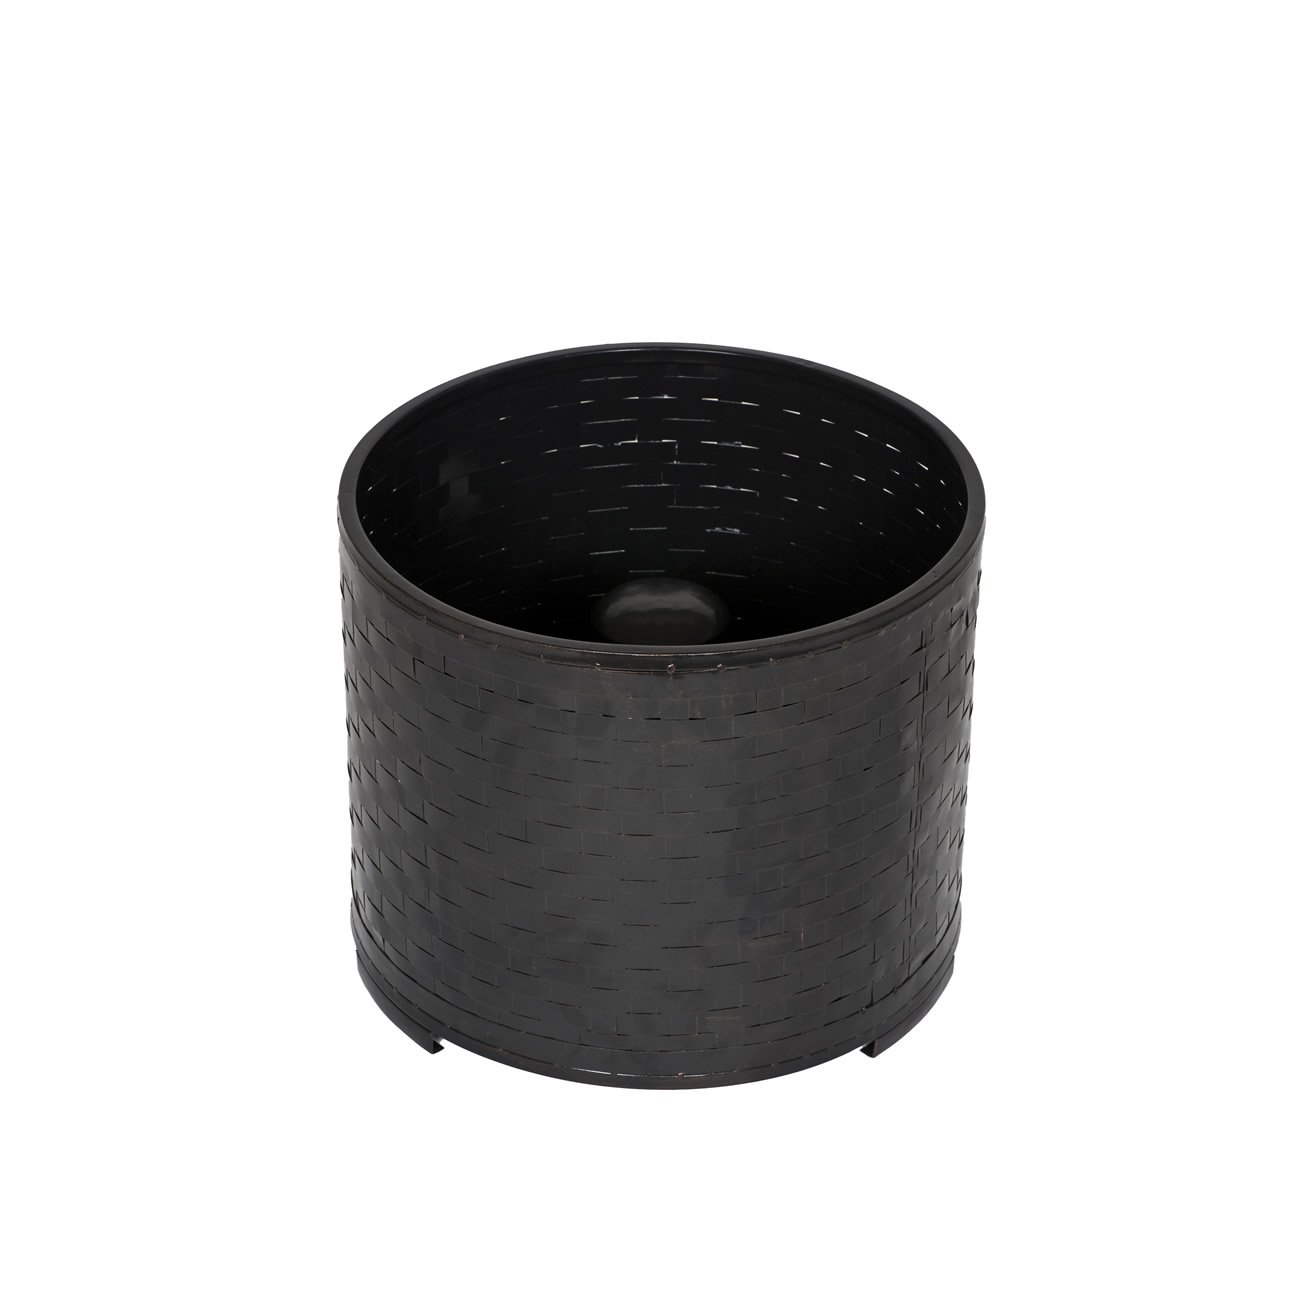 CobraCo Woven Steel Hose Holder with Bronze Finish HHWOVEN-BZ